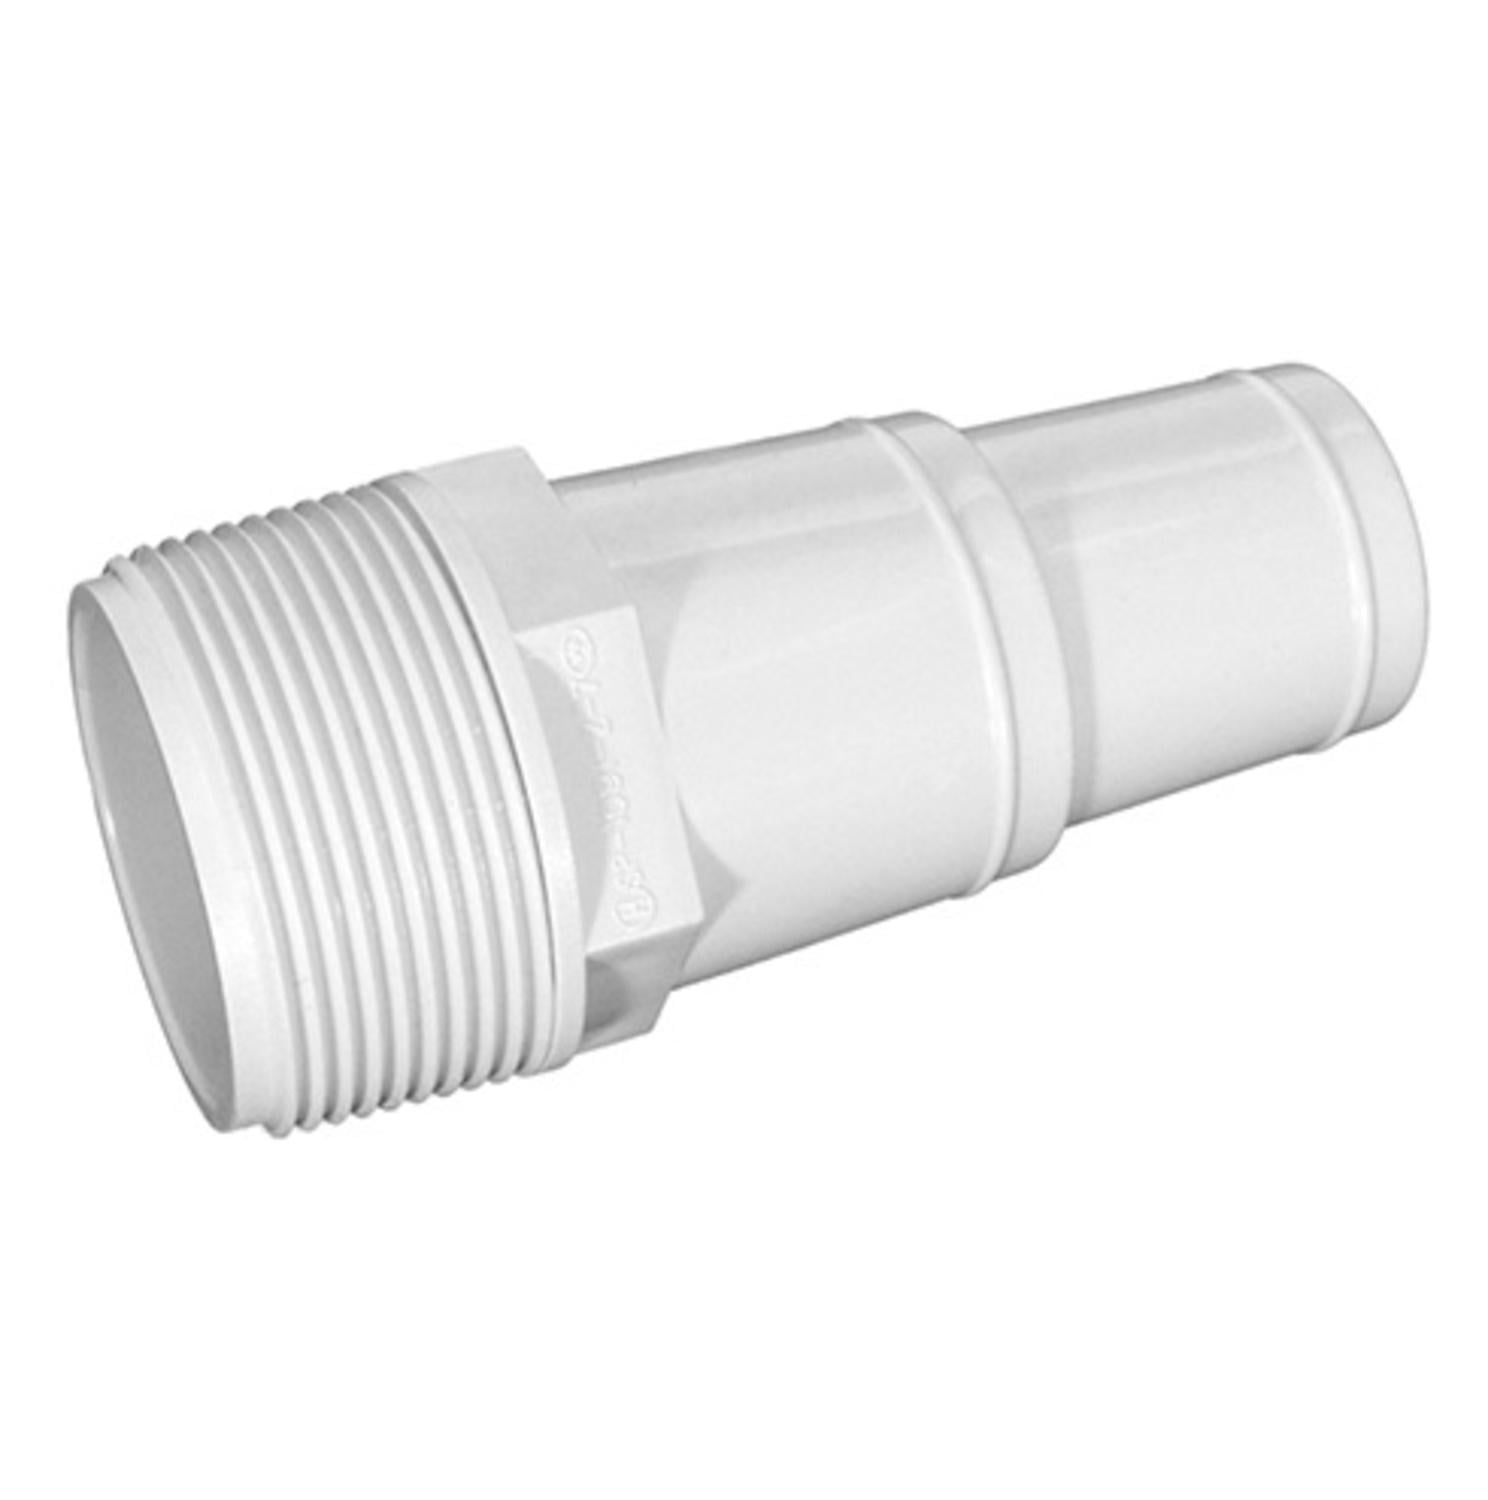 "4"" White Swimming Pool or Spa Threaded Hose Adapter by Northlight"